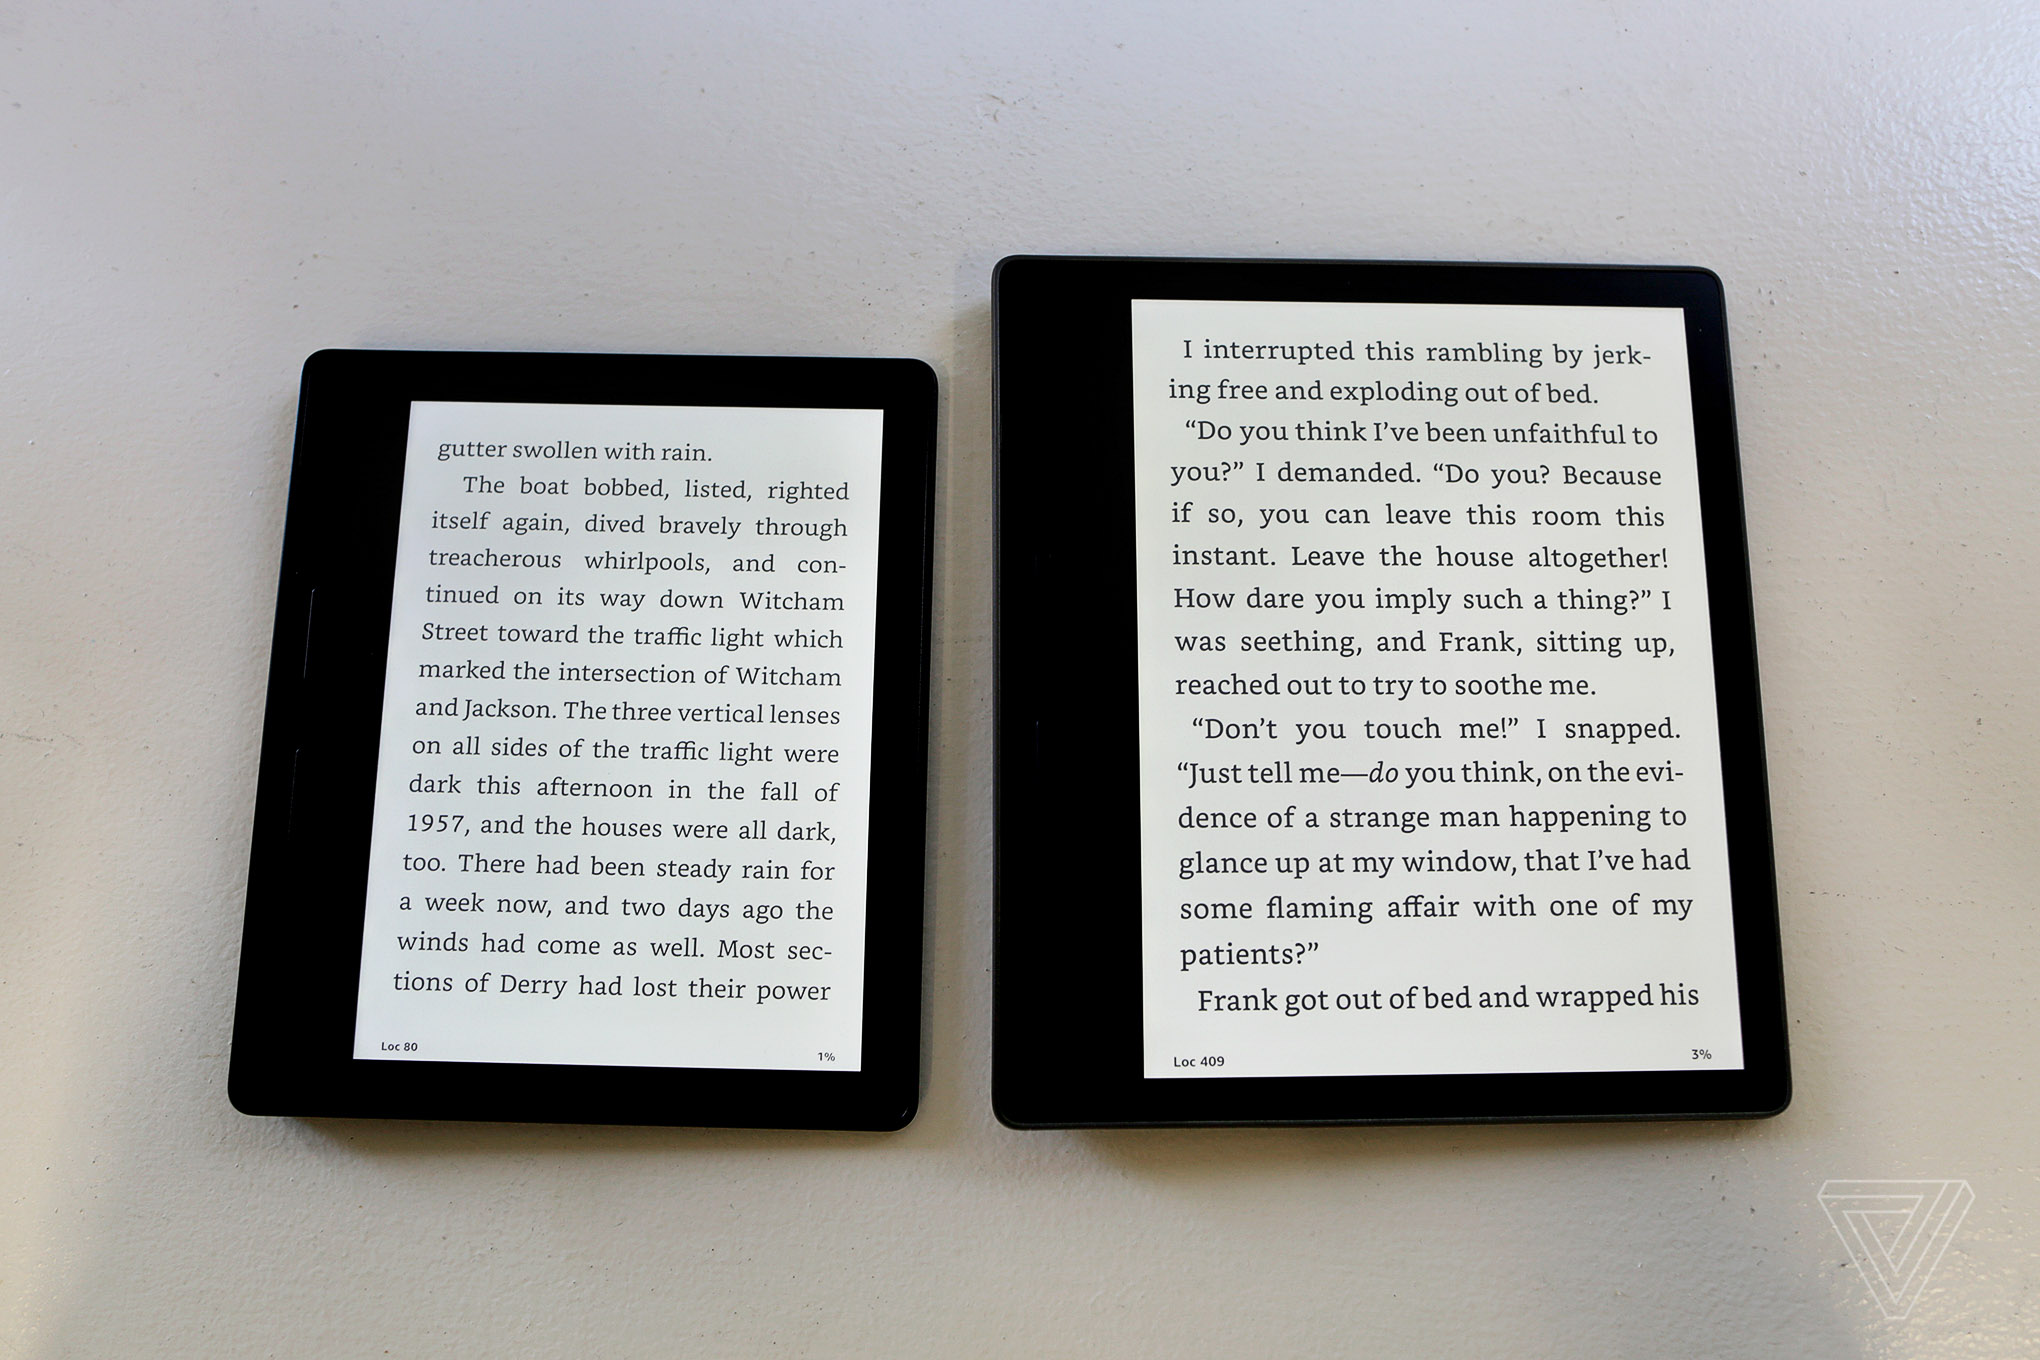 Amazon makes its latest splash with waterproof Kindle Oasis e-reader